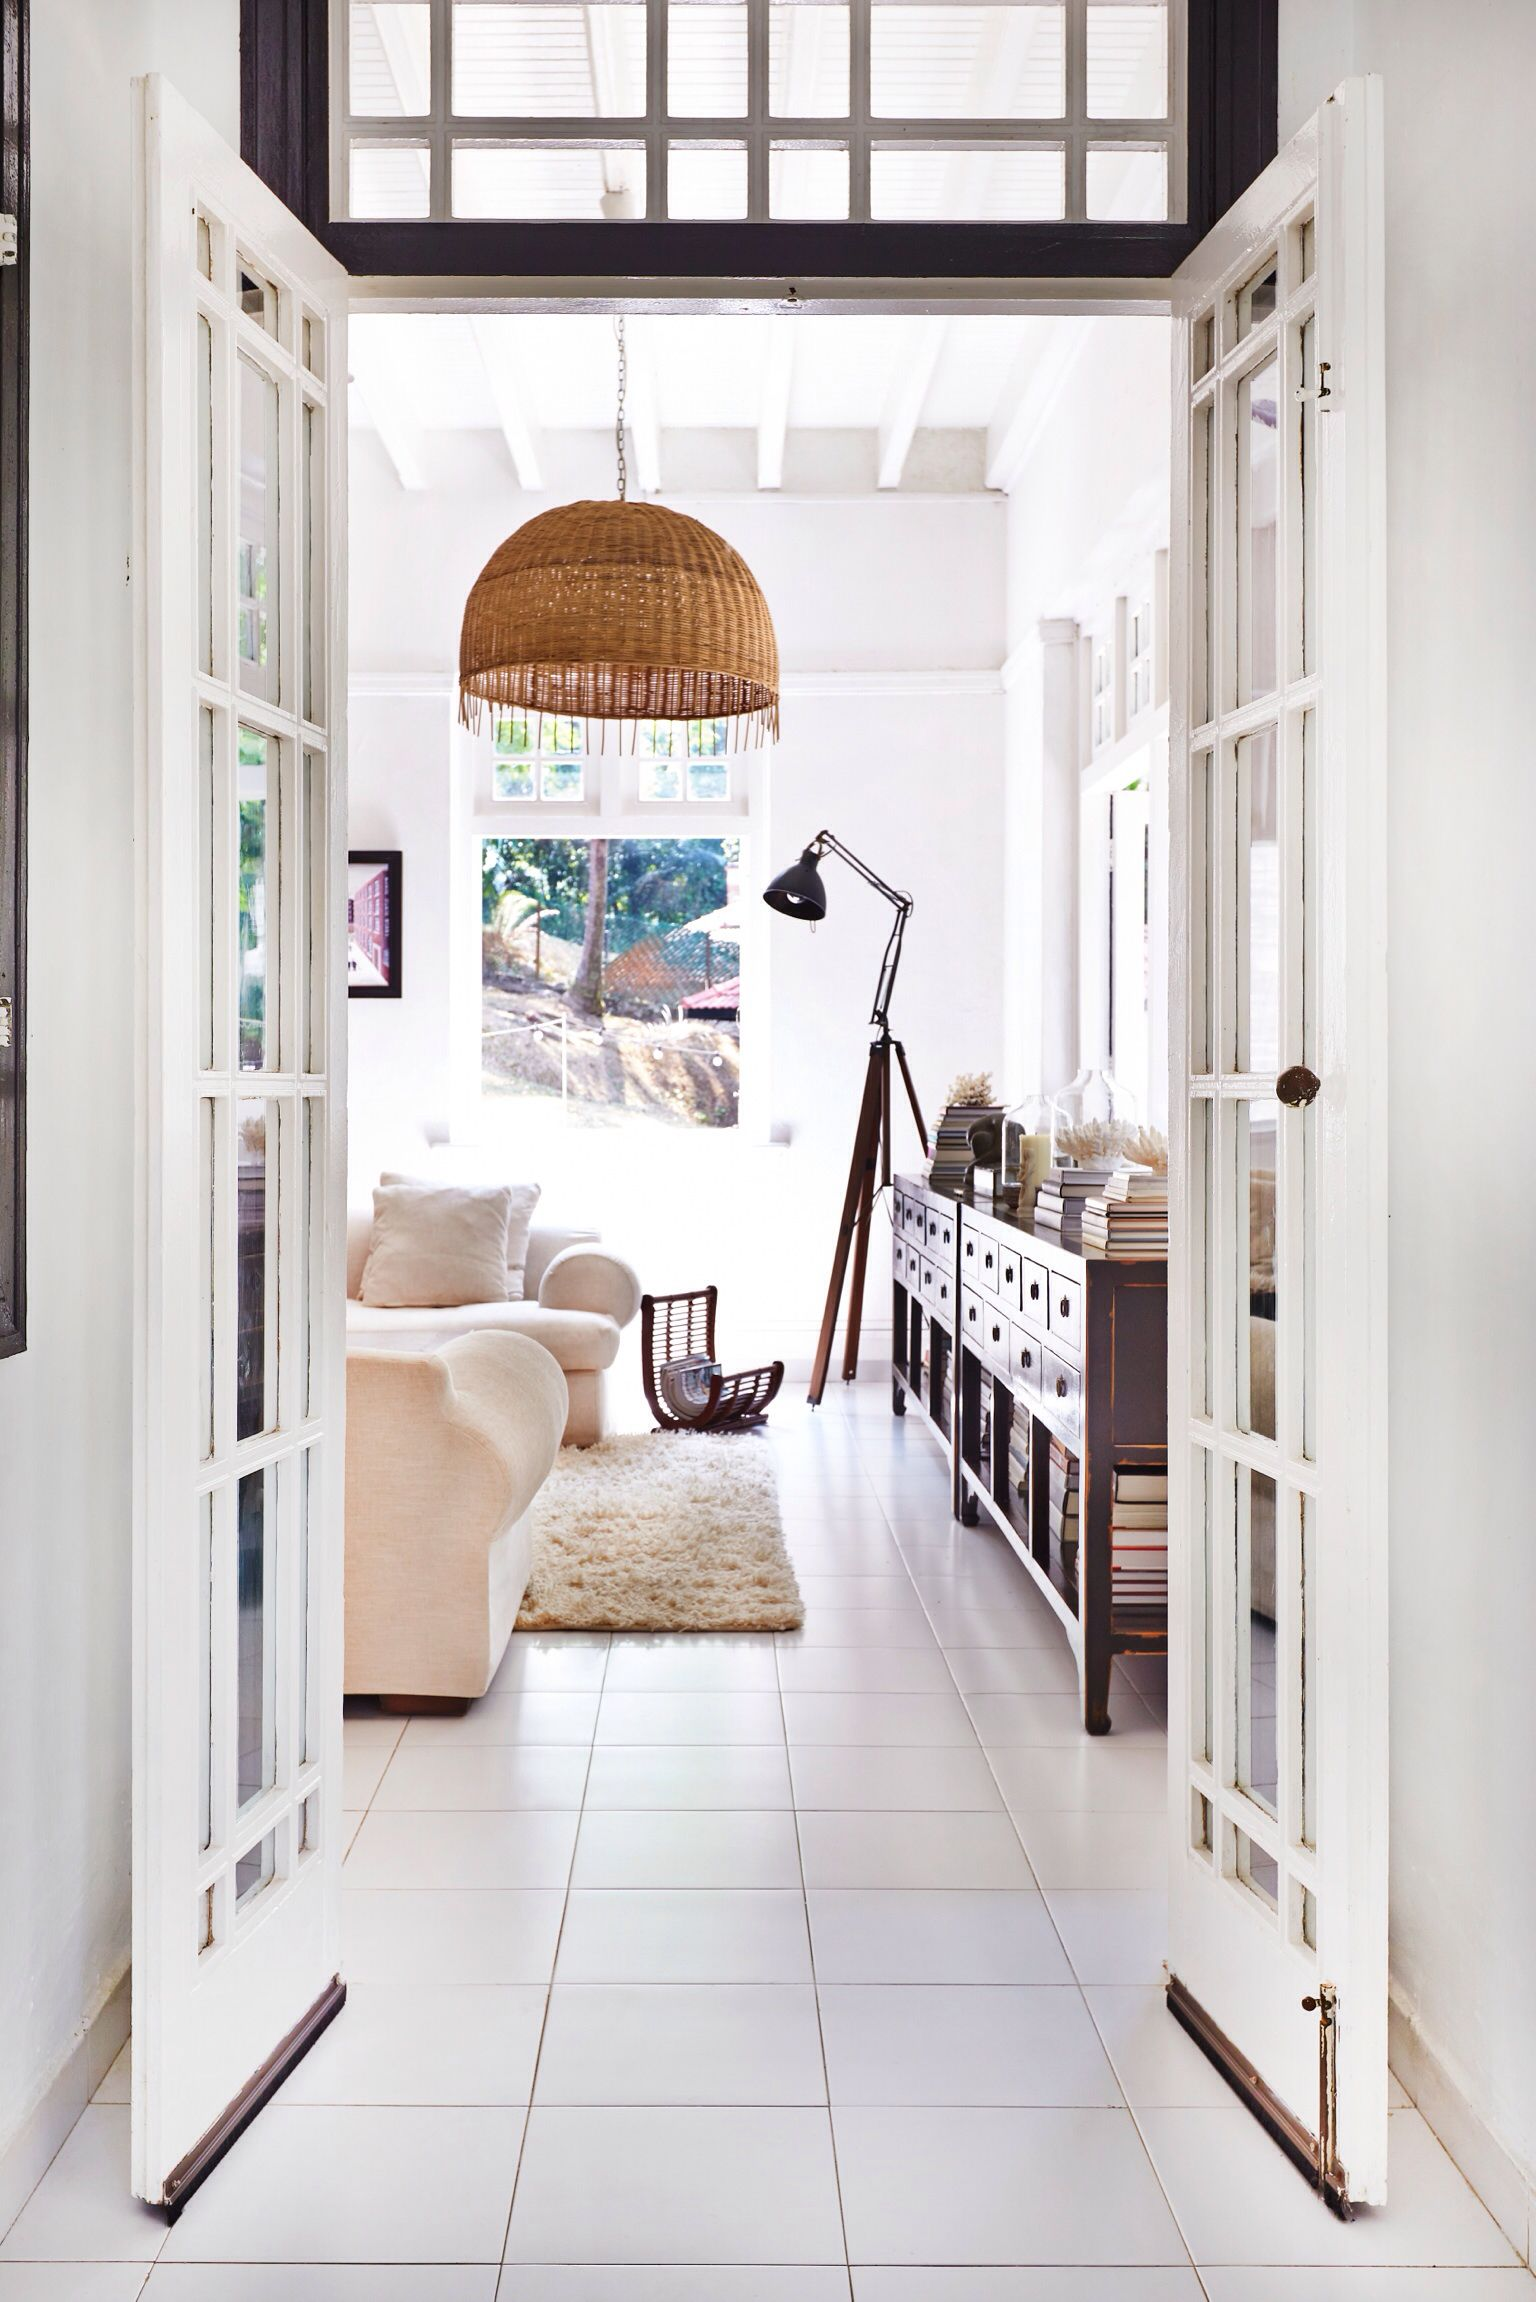 20 Modern Colonial Interior Decorating Ideas Inspired By Beautiful Colonial Homes: Paper + White Colonial Bungalow (www.paperandwhite.com)